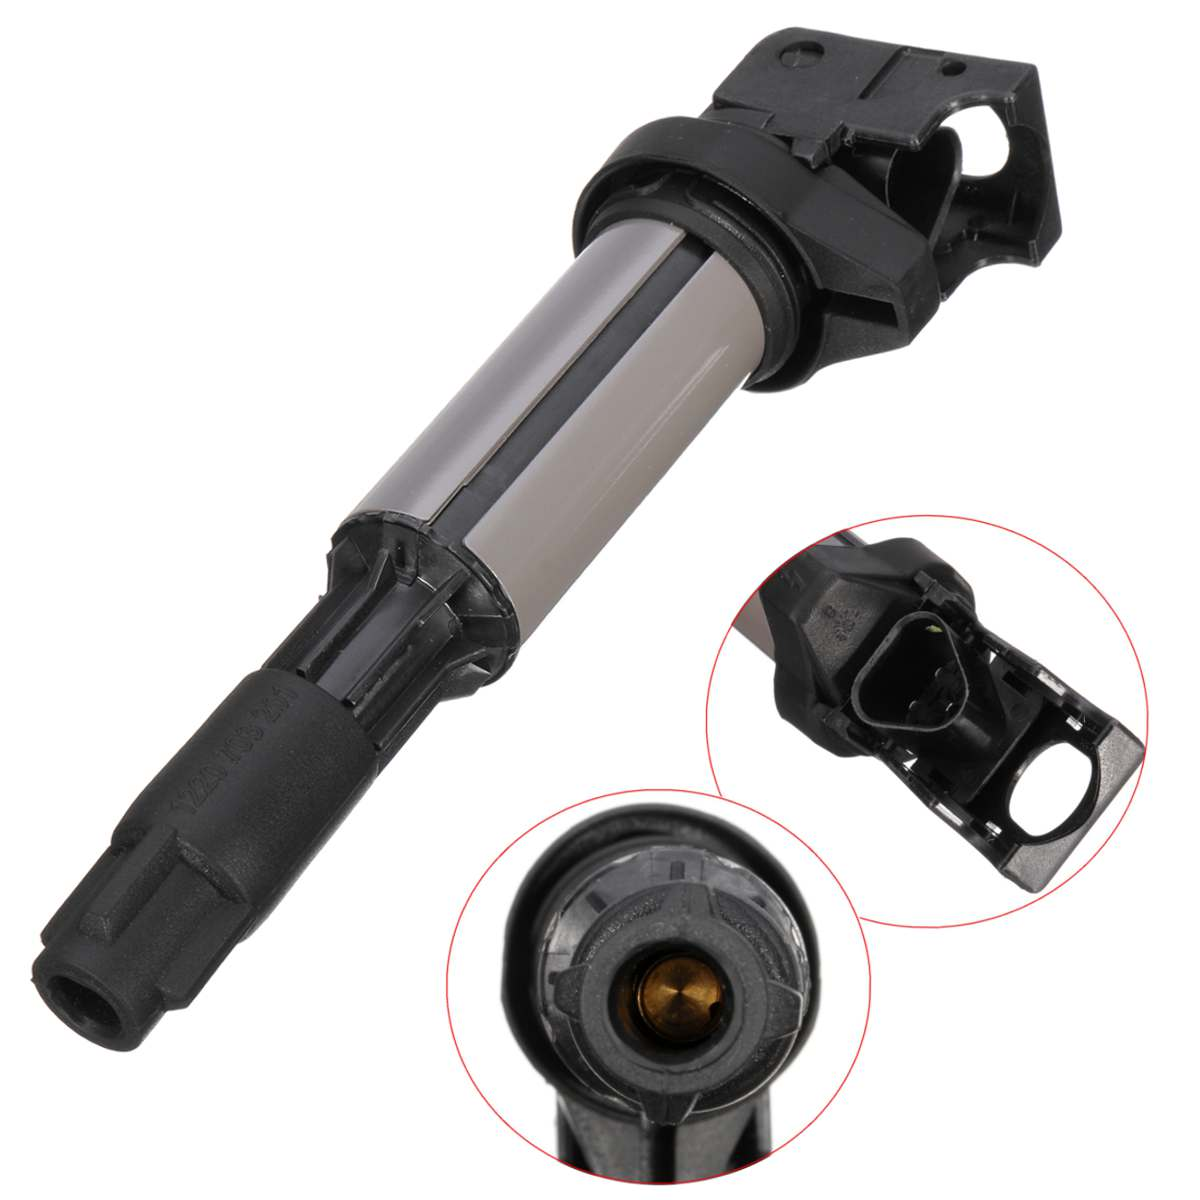 1x New Ignition Coils For BMW E46 E53 E60 E70 E71 E90 X3 X5 M3 Z4 12131712219|Ignition Coil| |  - title=